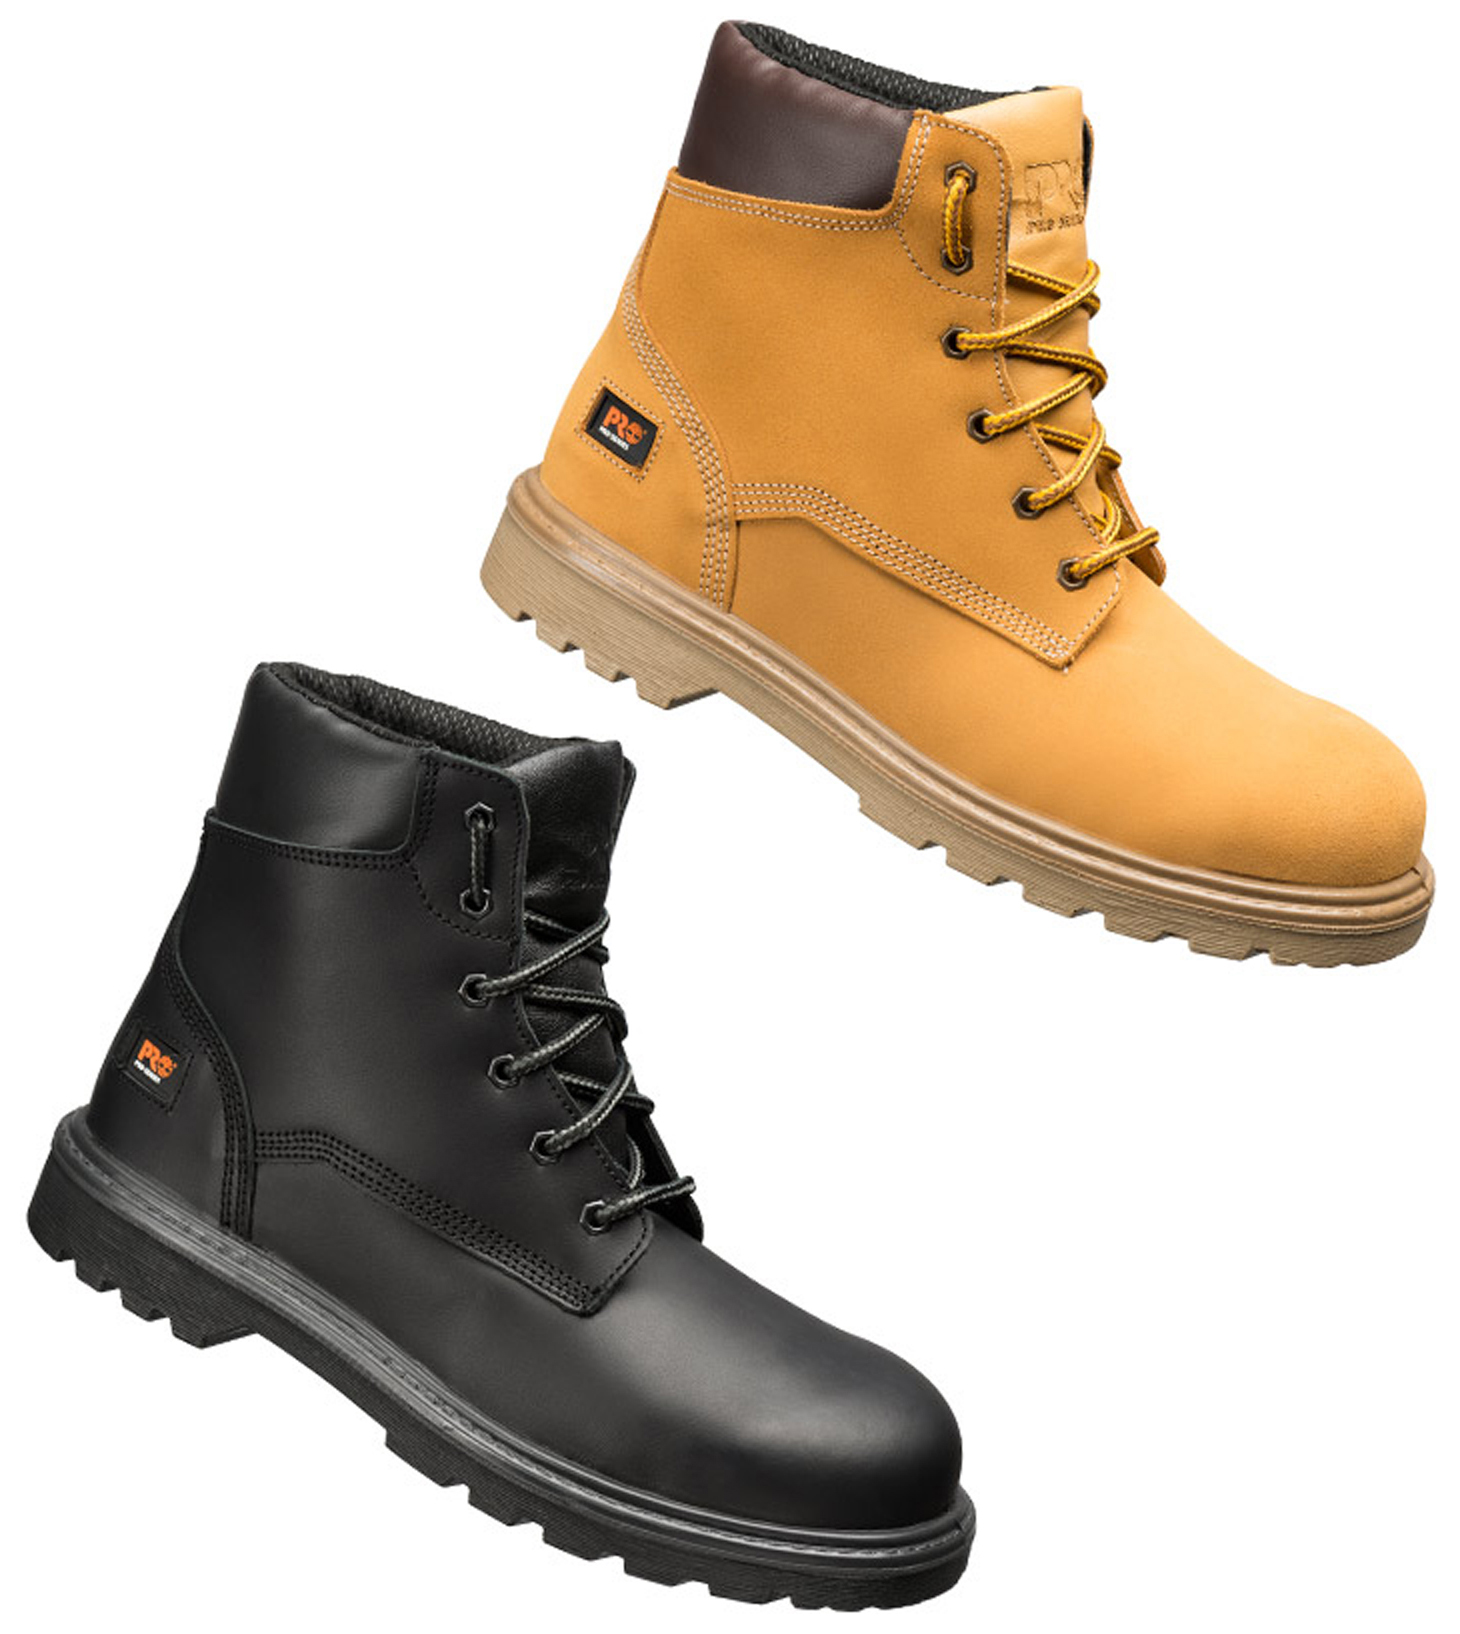 Timberland Pro Hero S3 Composite Leather Safety Steel Toe ...